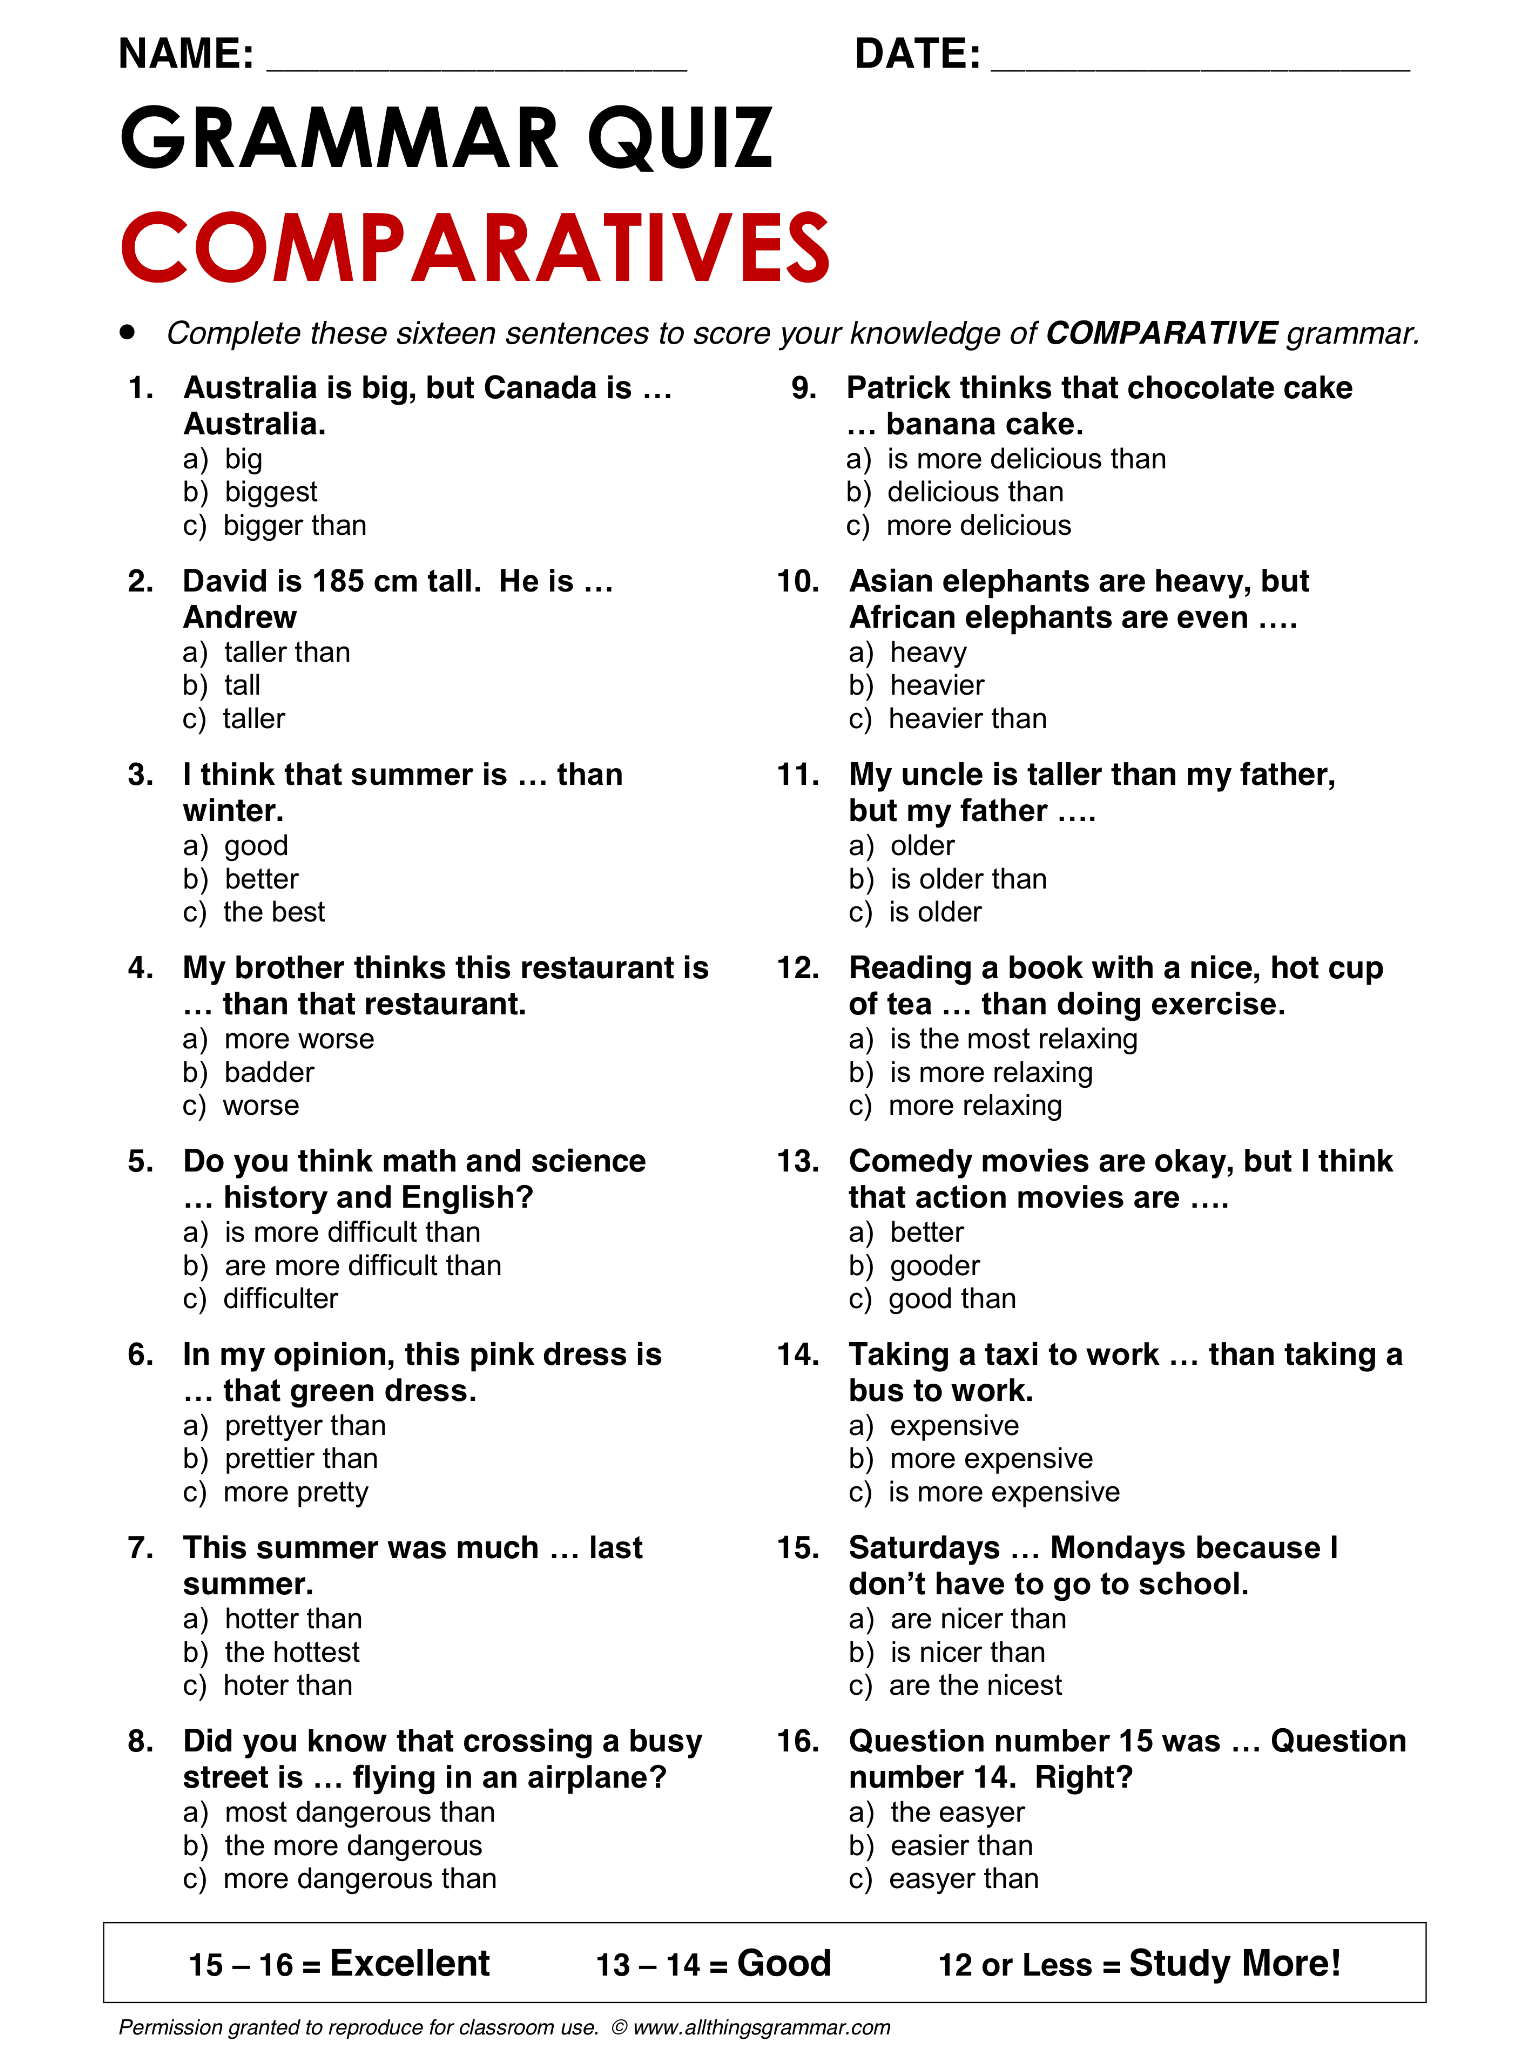 English Grammar Comparatives Lthingsgrammar Comparatives